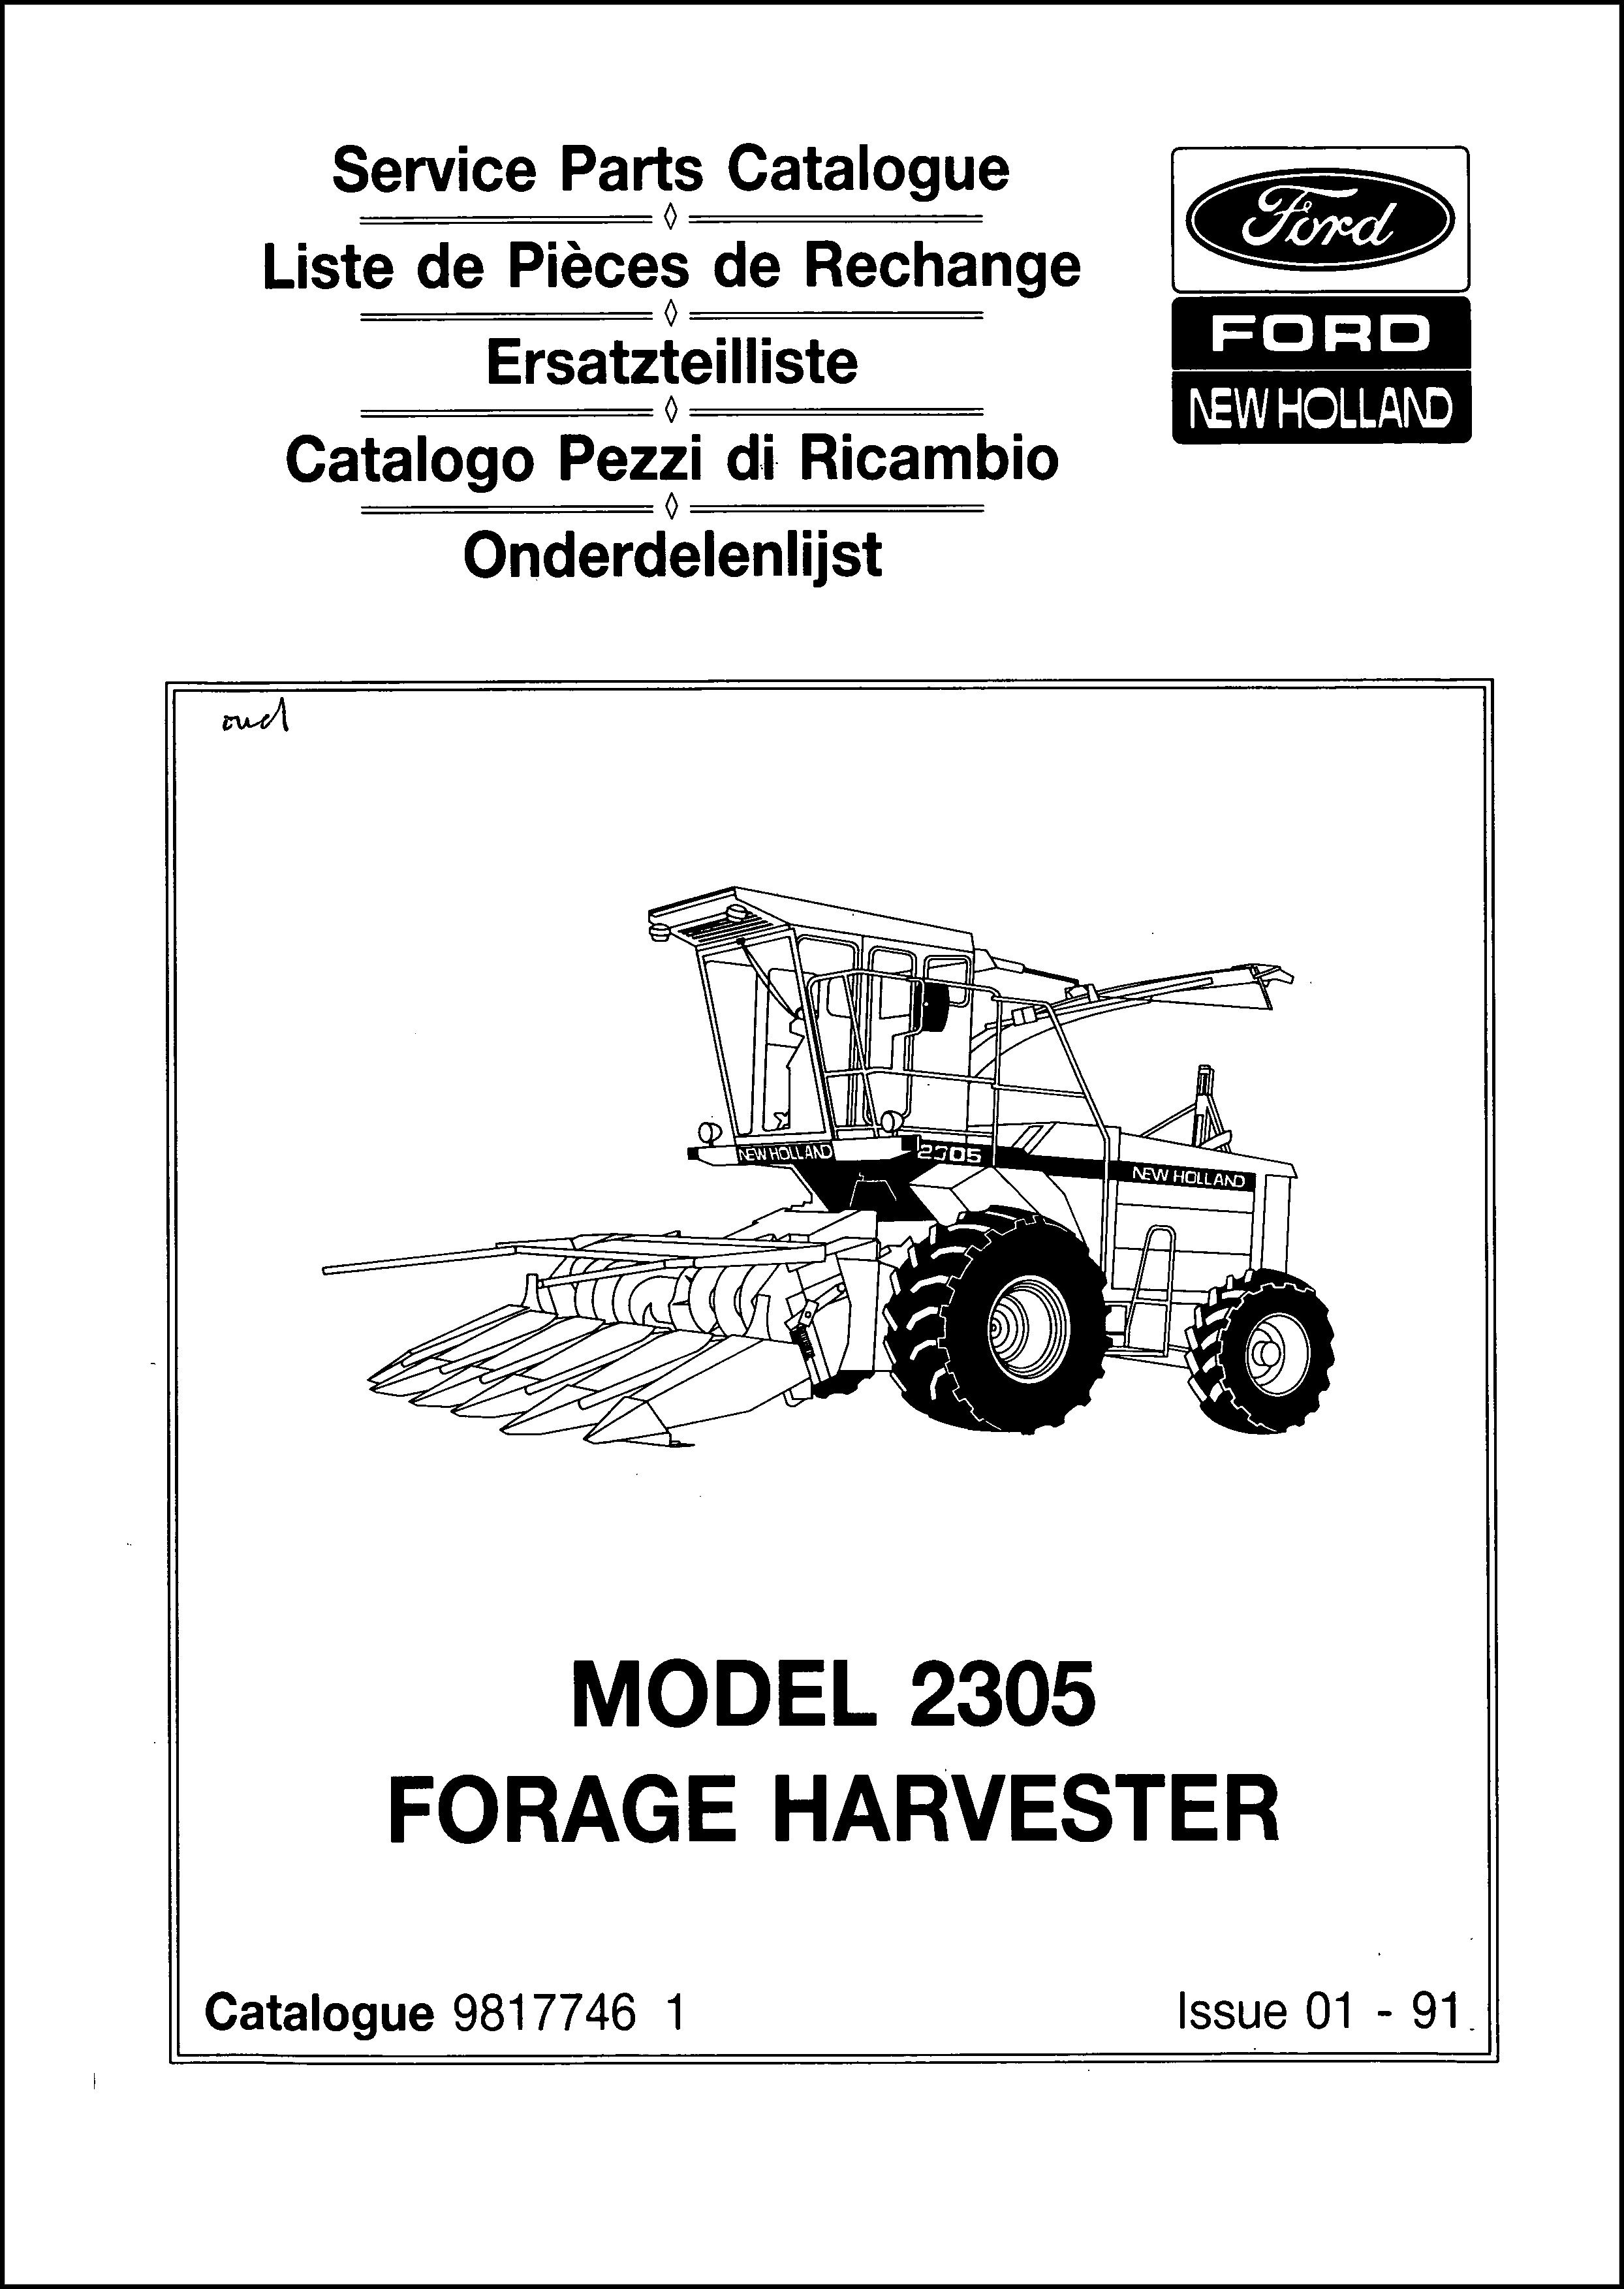 Ford New Holland 2305 Parts Manual For Service Forage Harvester In